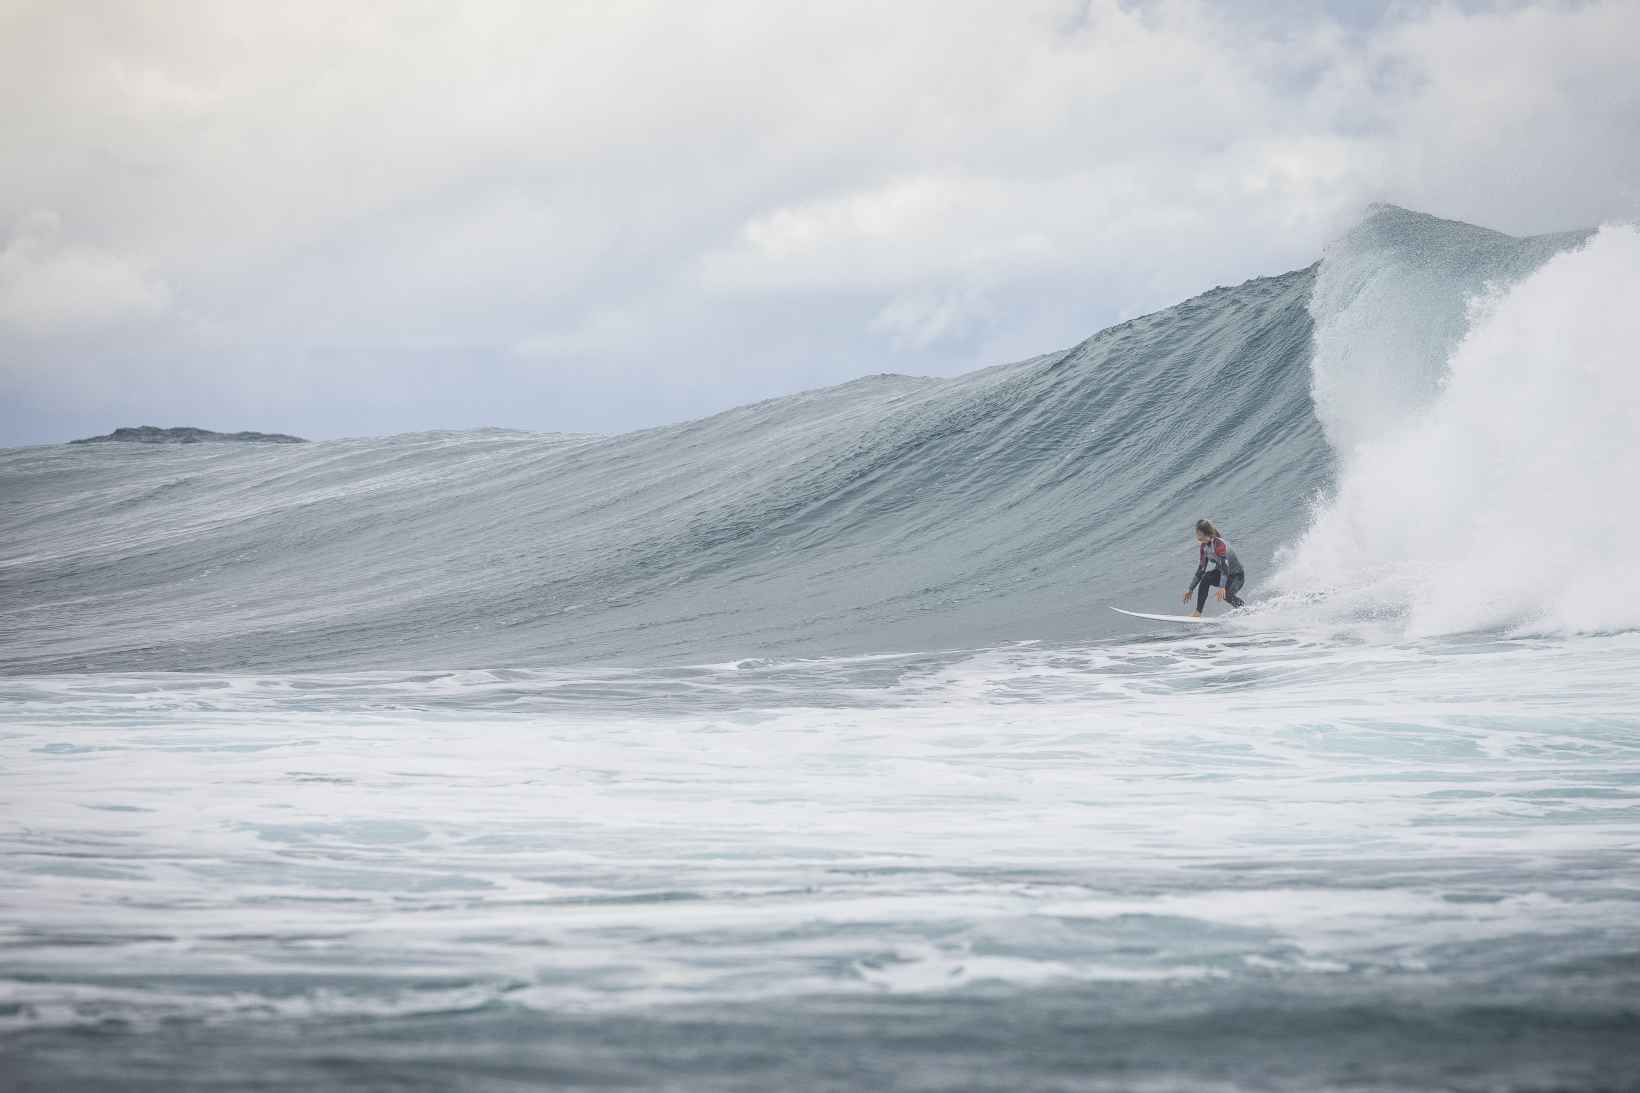 boots mobile margaret river pro Bronte Macaulay 6410Margaret21Maiers